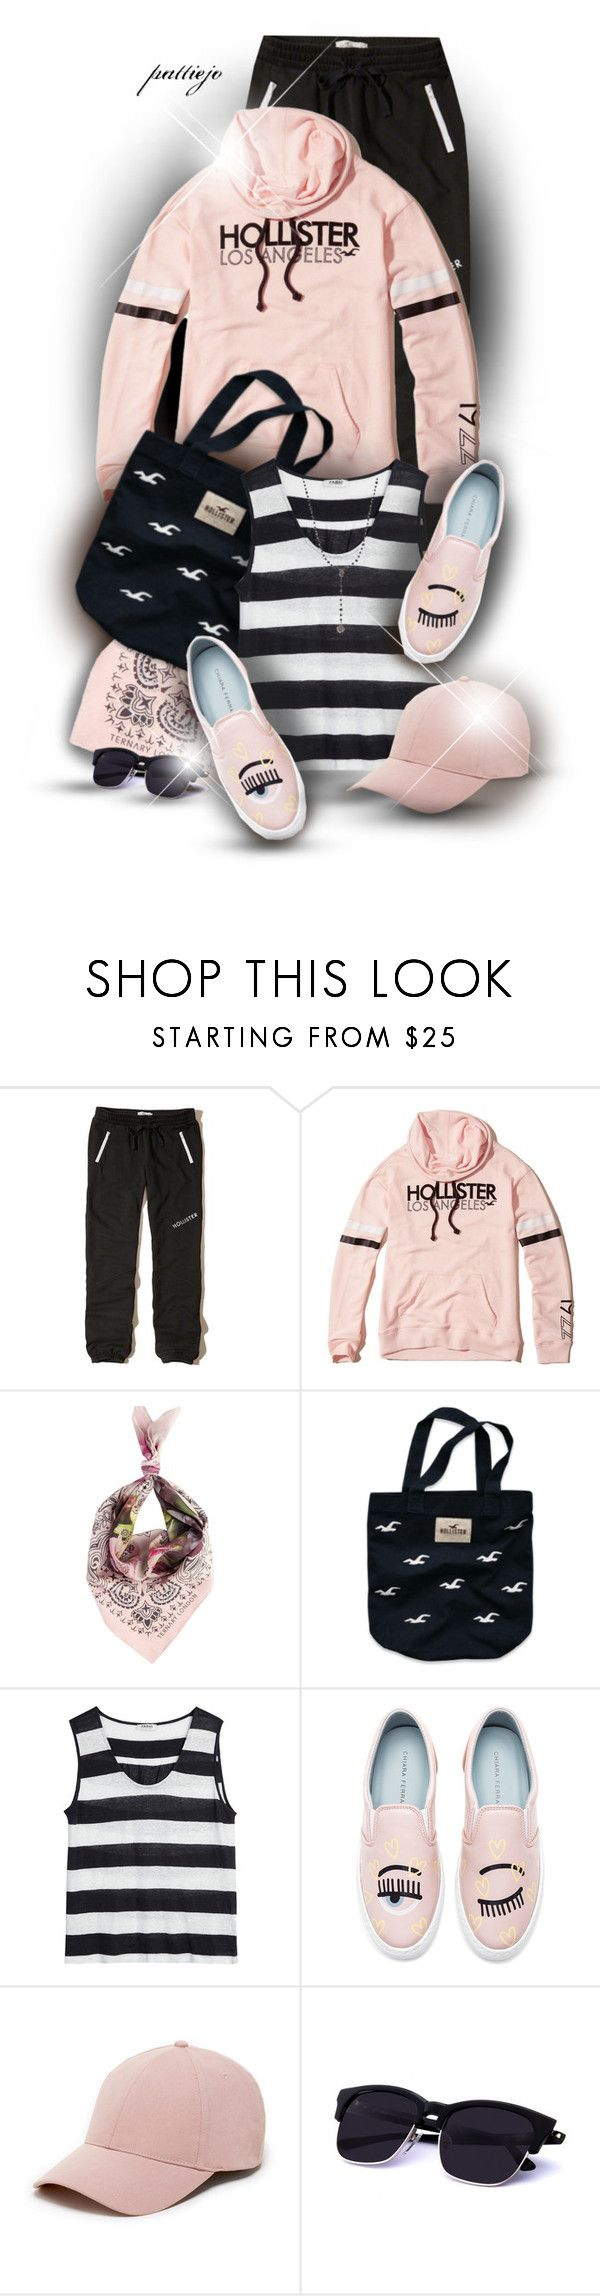 """""""The Eyes Have It"""" by rockreborn ❤ liked on Polyvore featuring Hollister Co., Ternary London, Nicole Farhi, Chiara Ferragni, Sole Society and Bavna"""